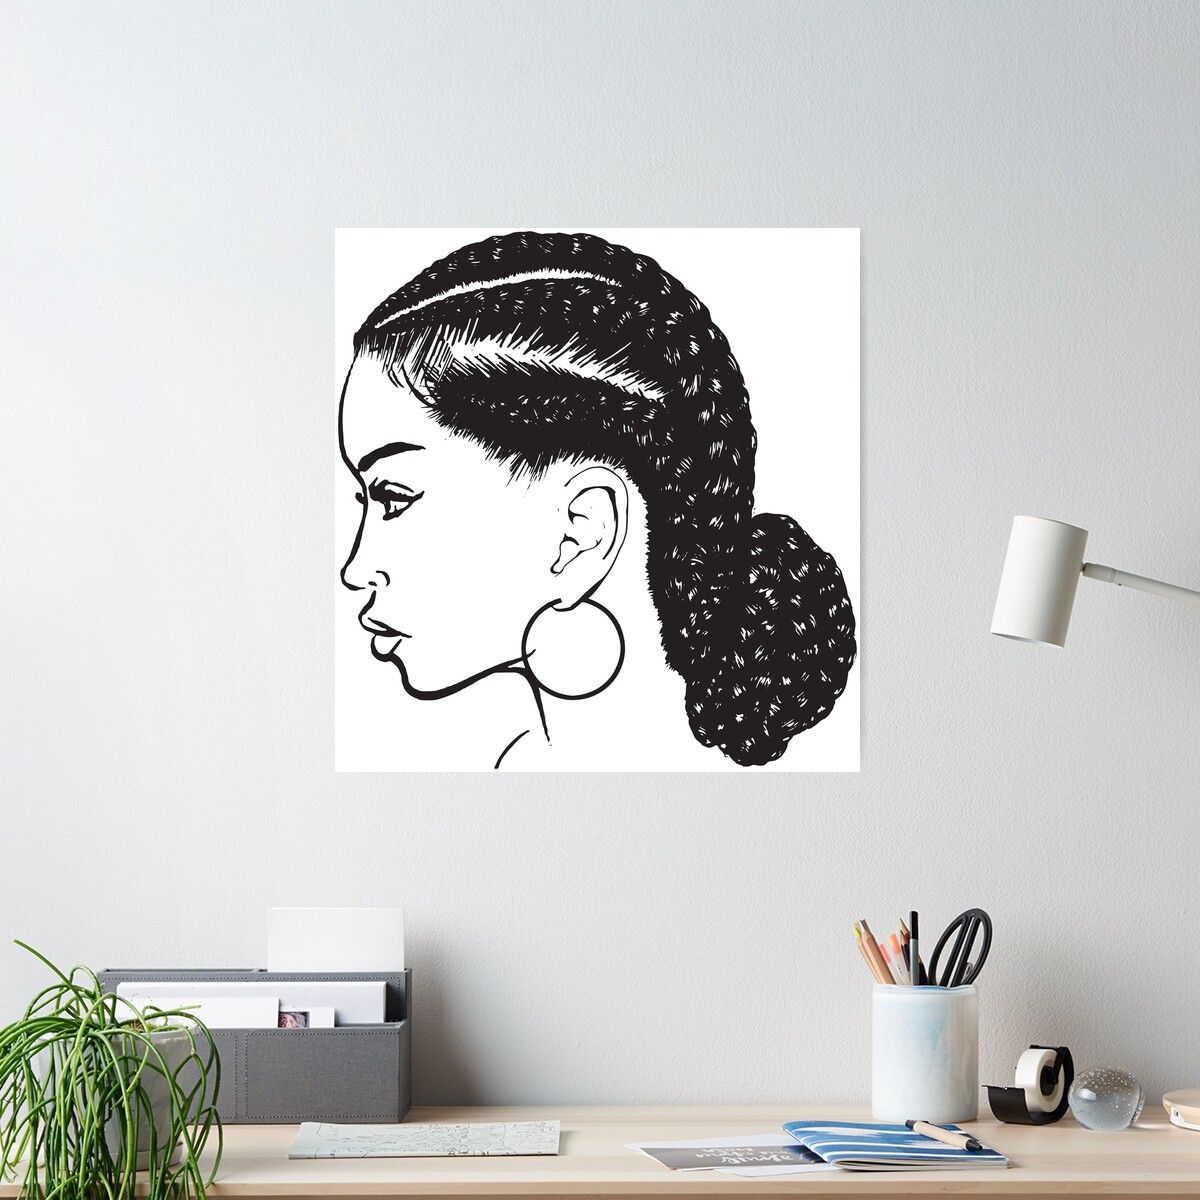 Black Woman Braids Hairstyle African American Beauty Salon Poster In 2020 Braids For Black Women African Braids Hairstyles African American Beauty